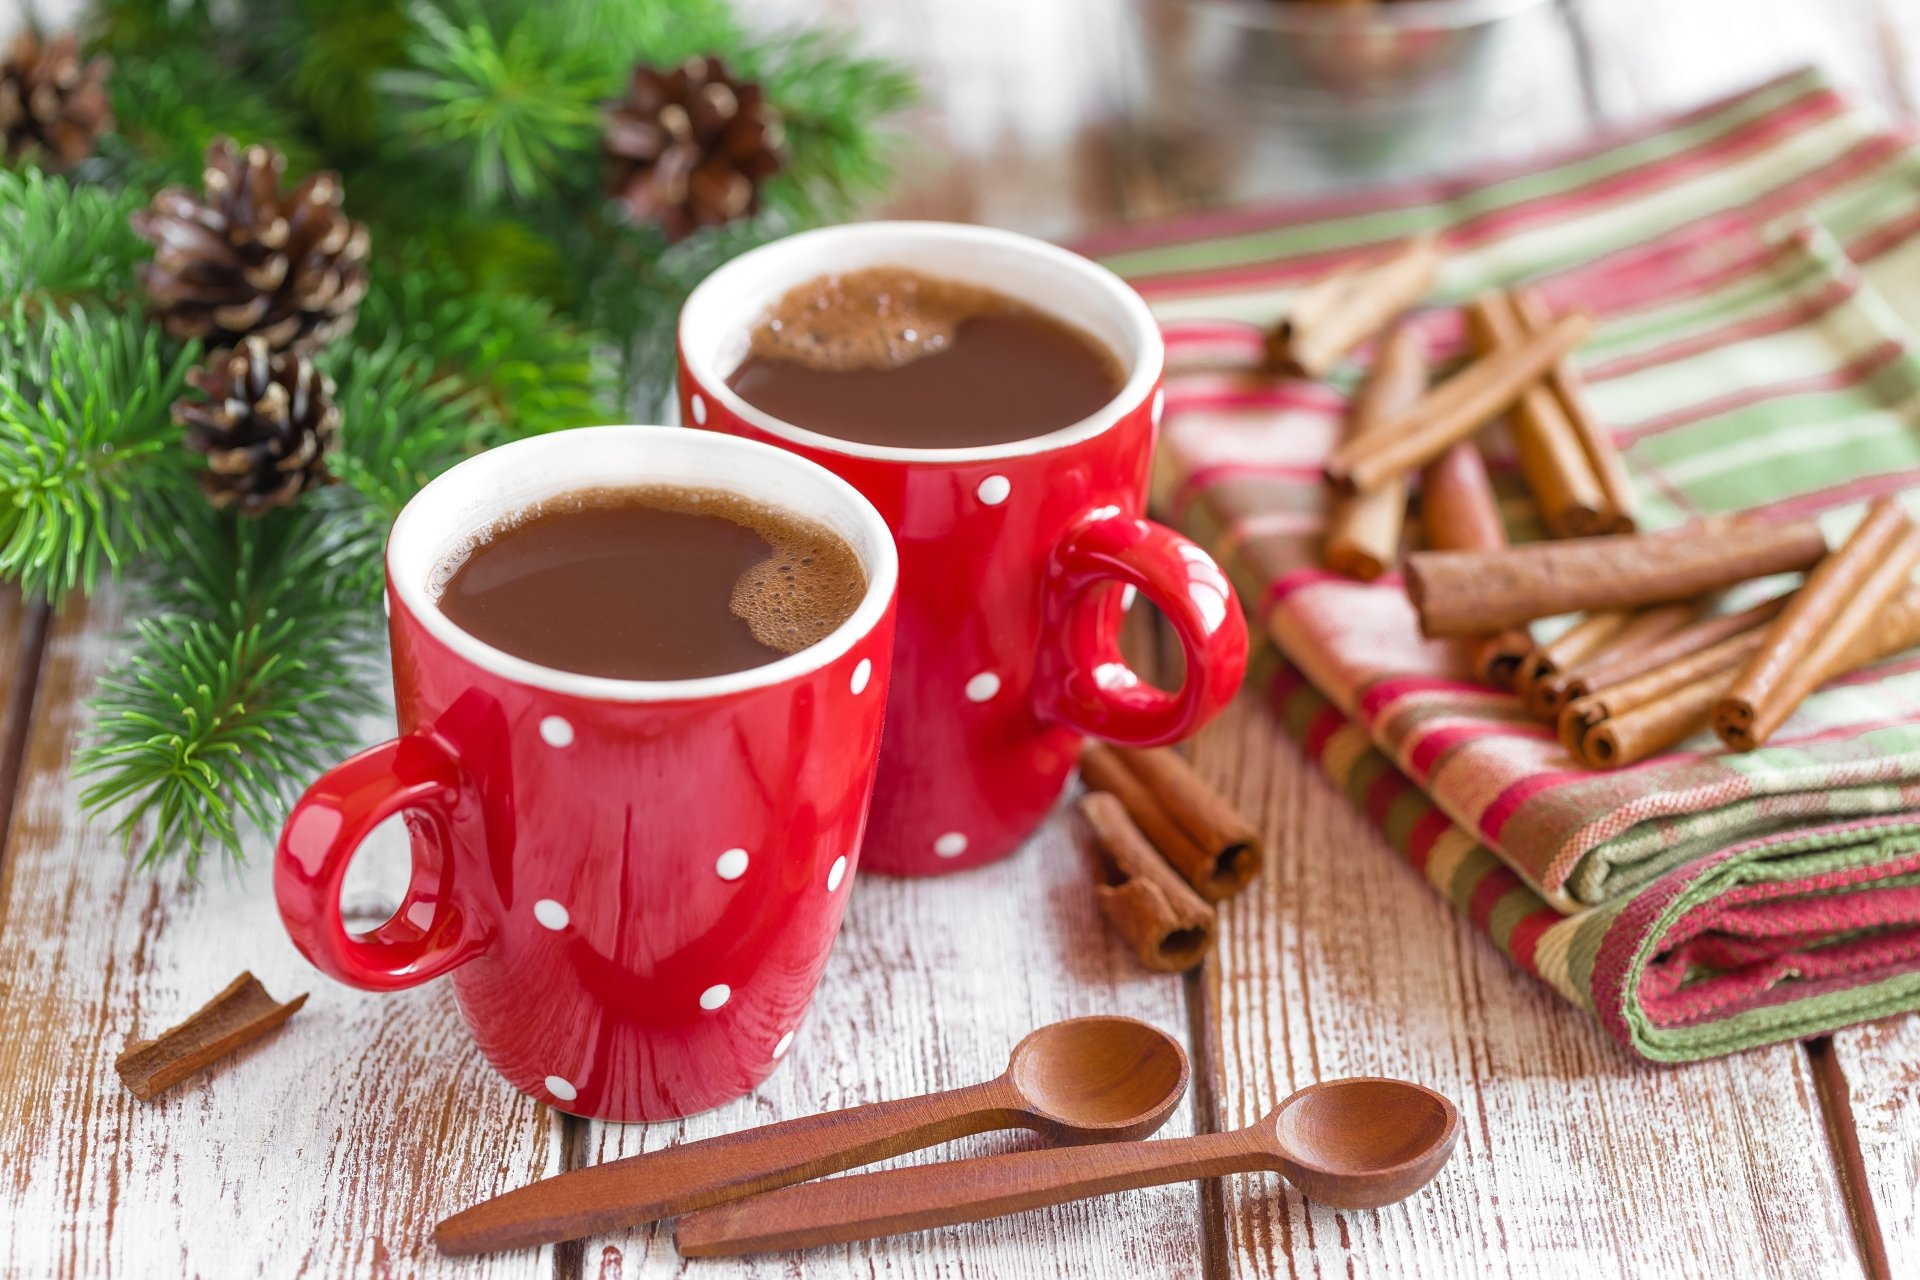 Food - Hot Chocolate  Cup Cinnamon Wallpaper